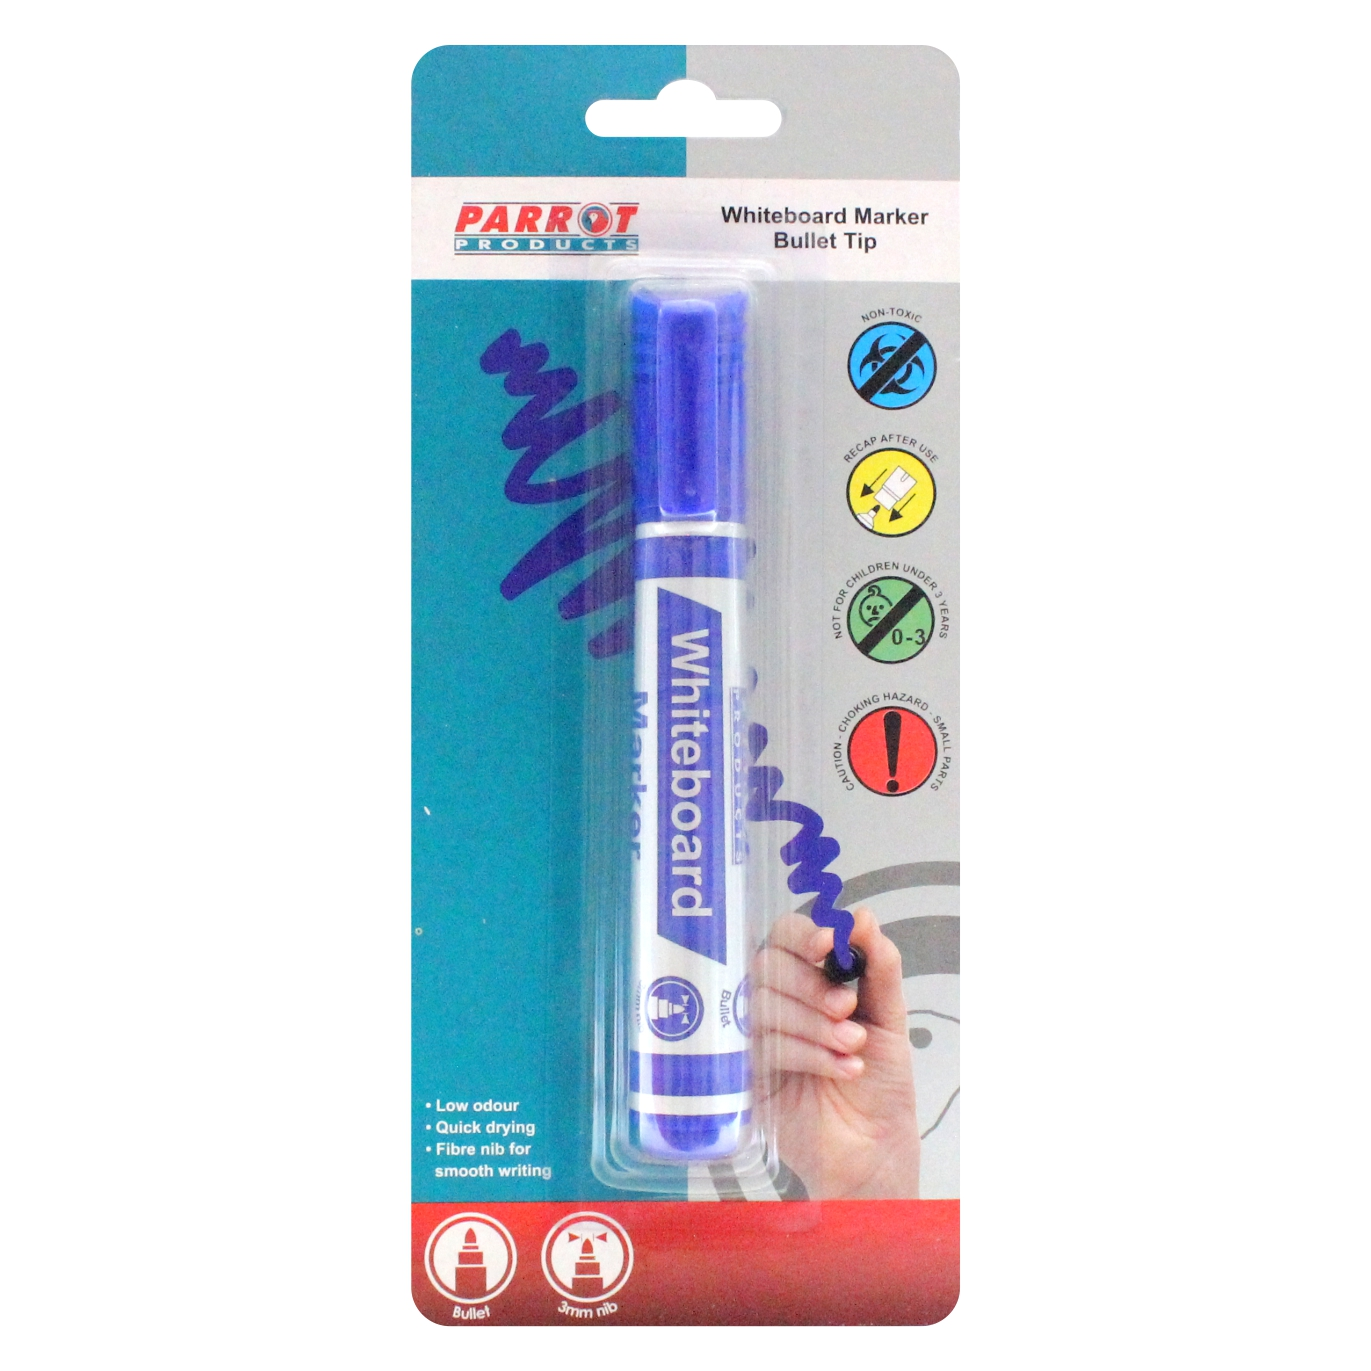 Whiteboard Marker (Bullet Tip, Carded, Blue)